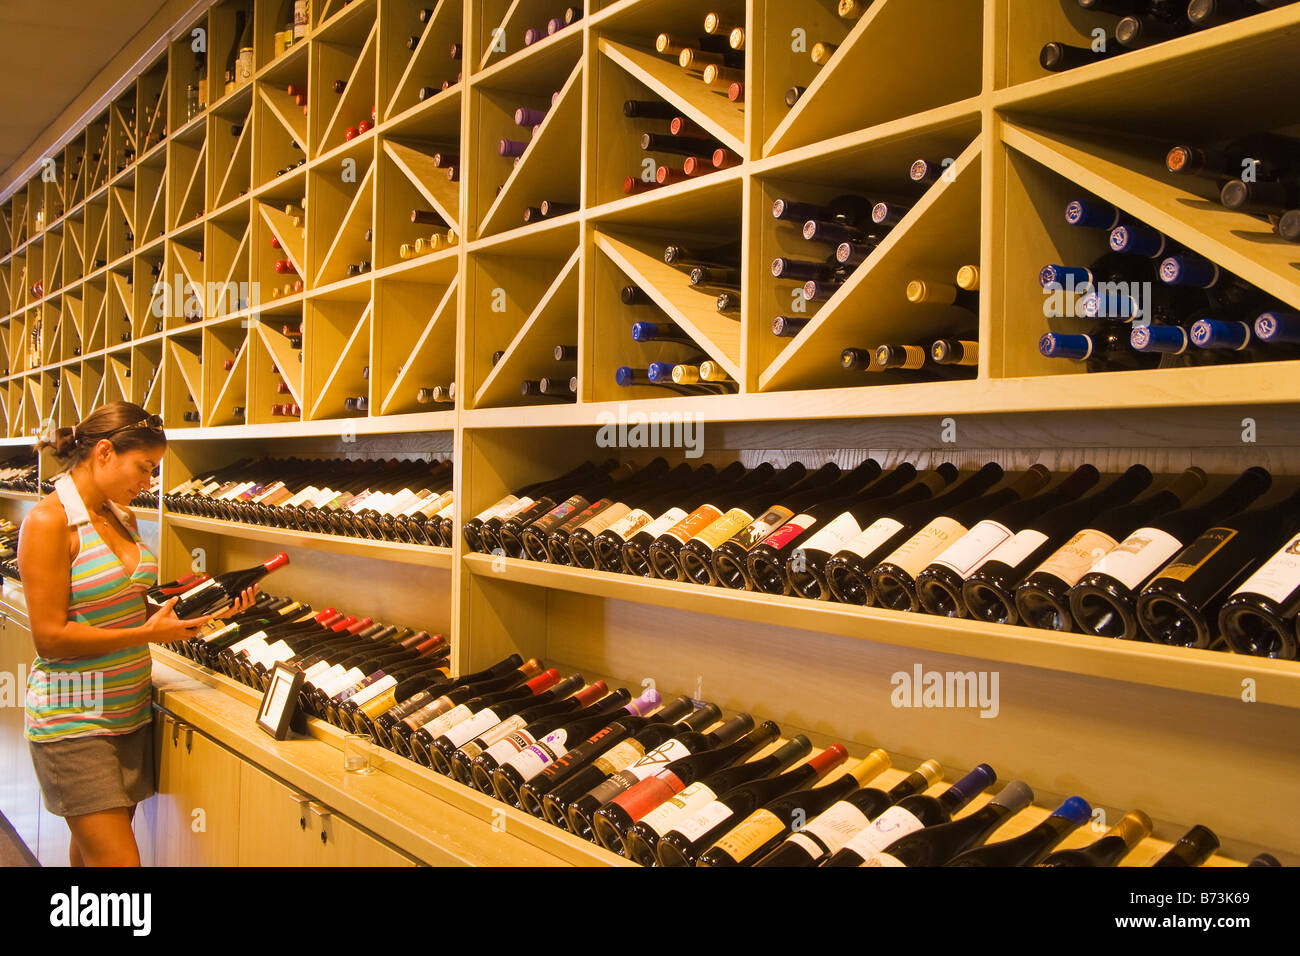 wine selection at the Los Olivos Cafe and Wine Merchant Los Olivos Santa Ynez Valley California United States of - Stock Image